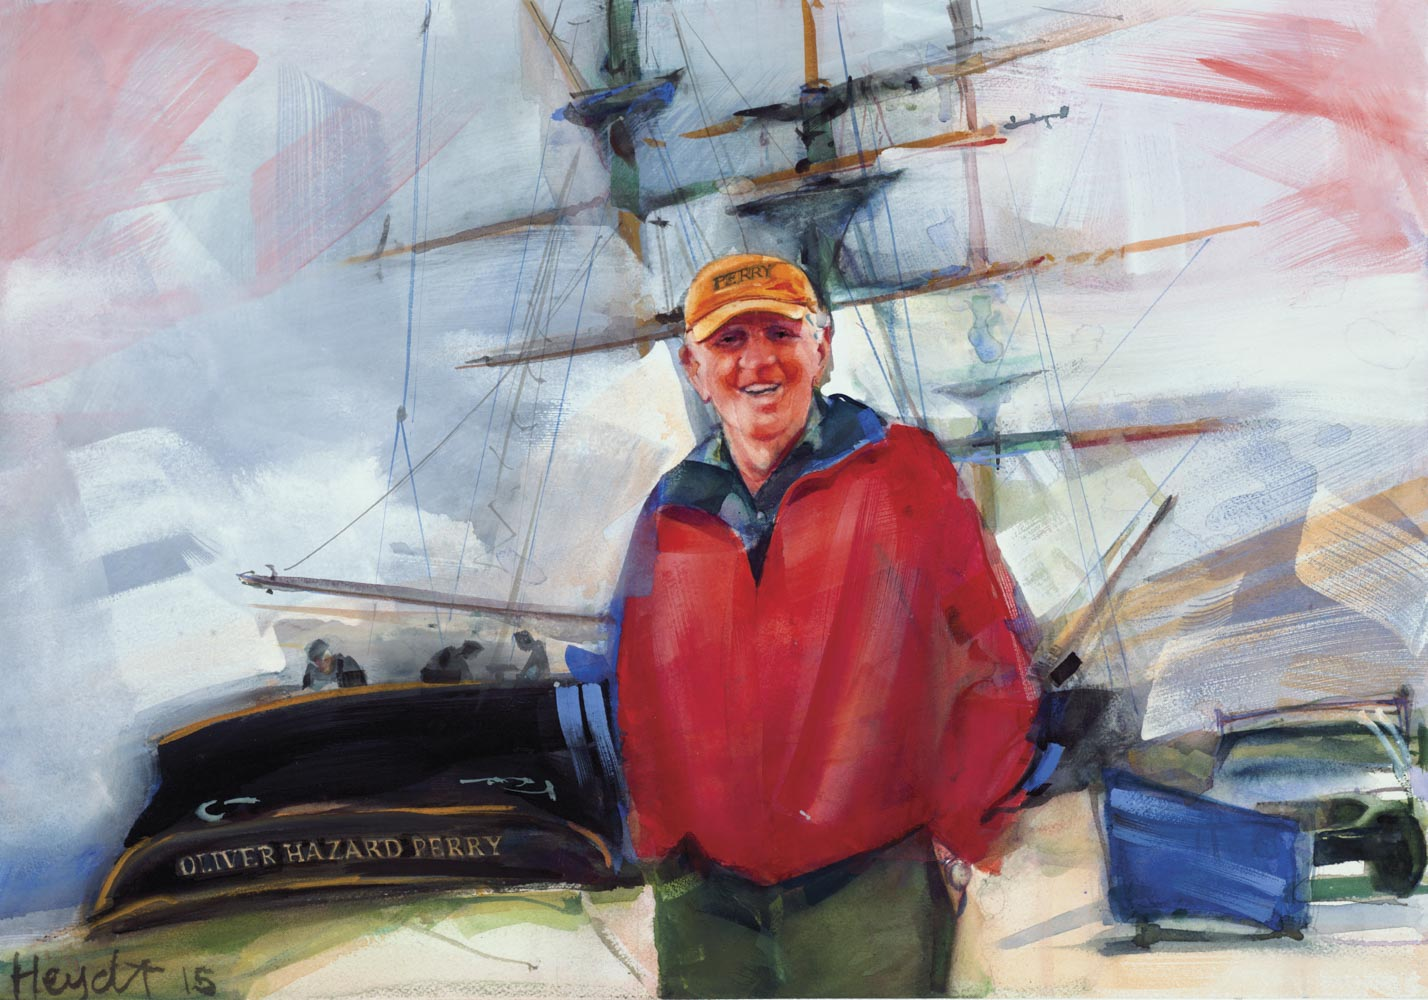 Bart Dunbar, the visionary leader for the SSV Oliver Hazard Perry